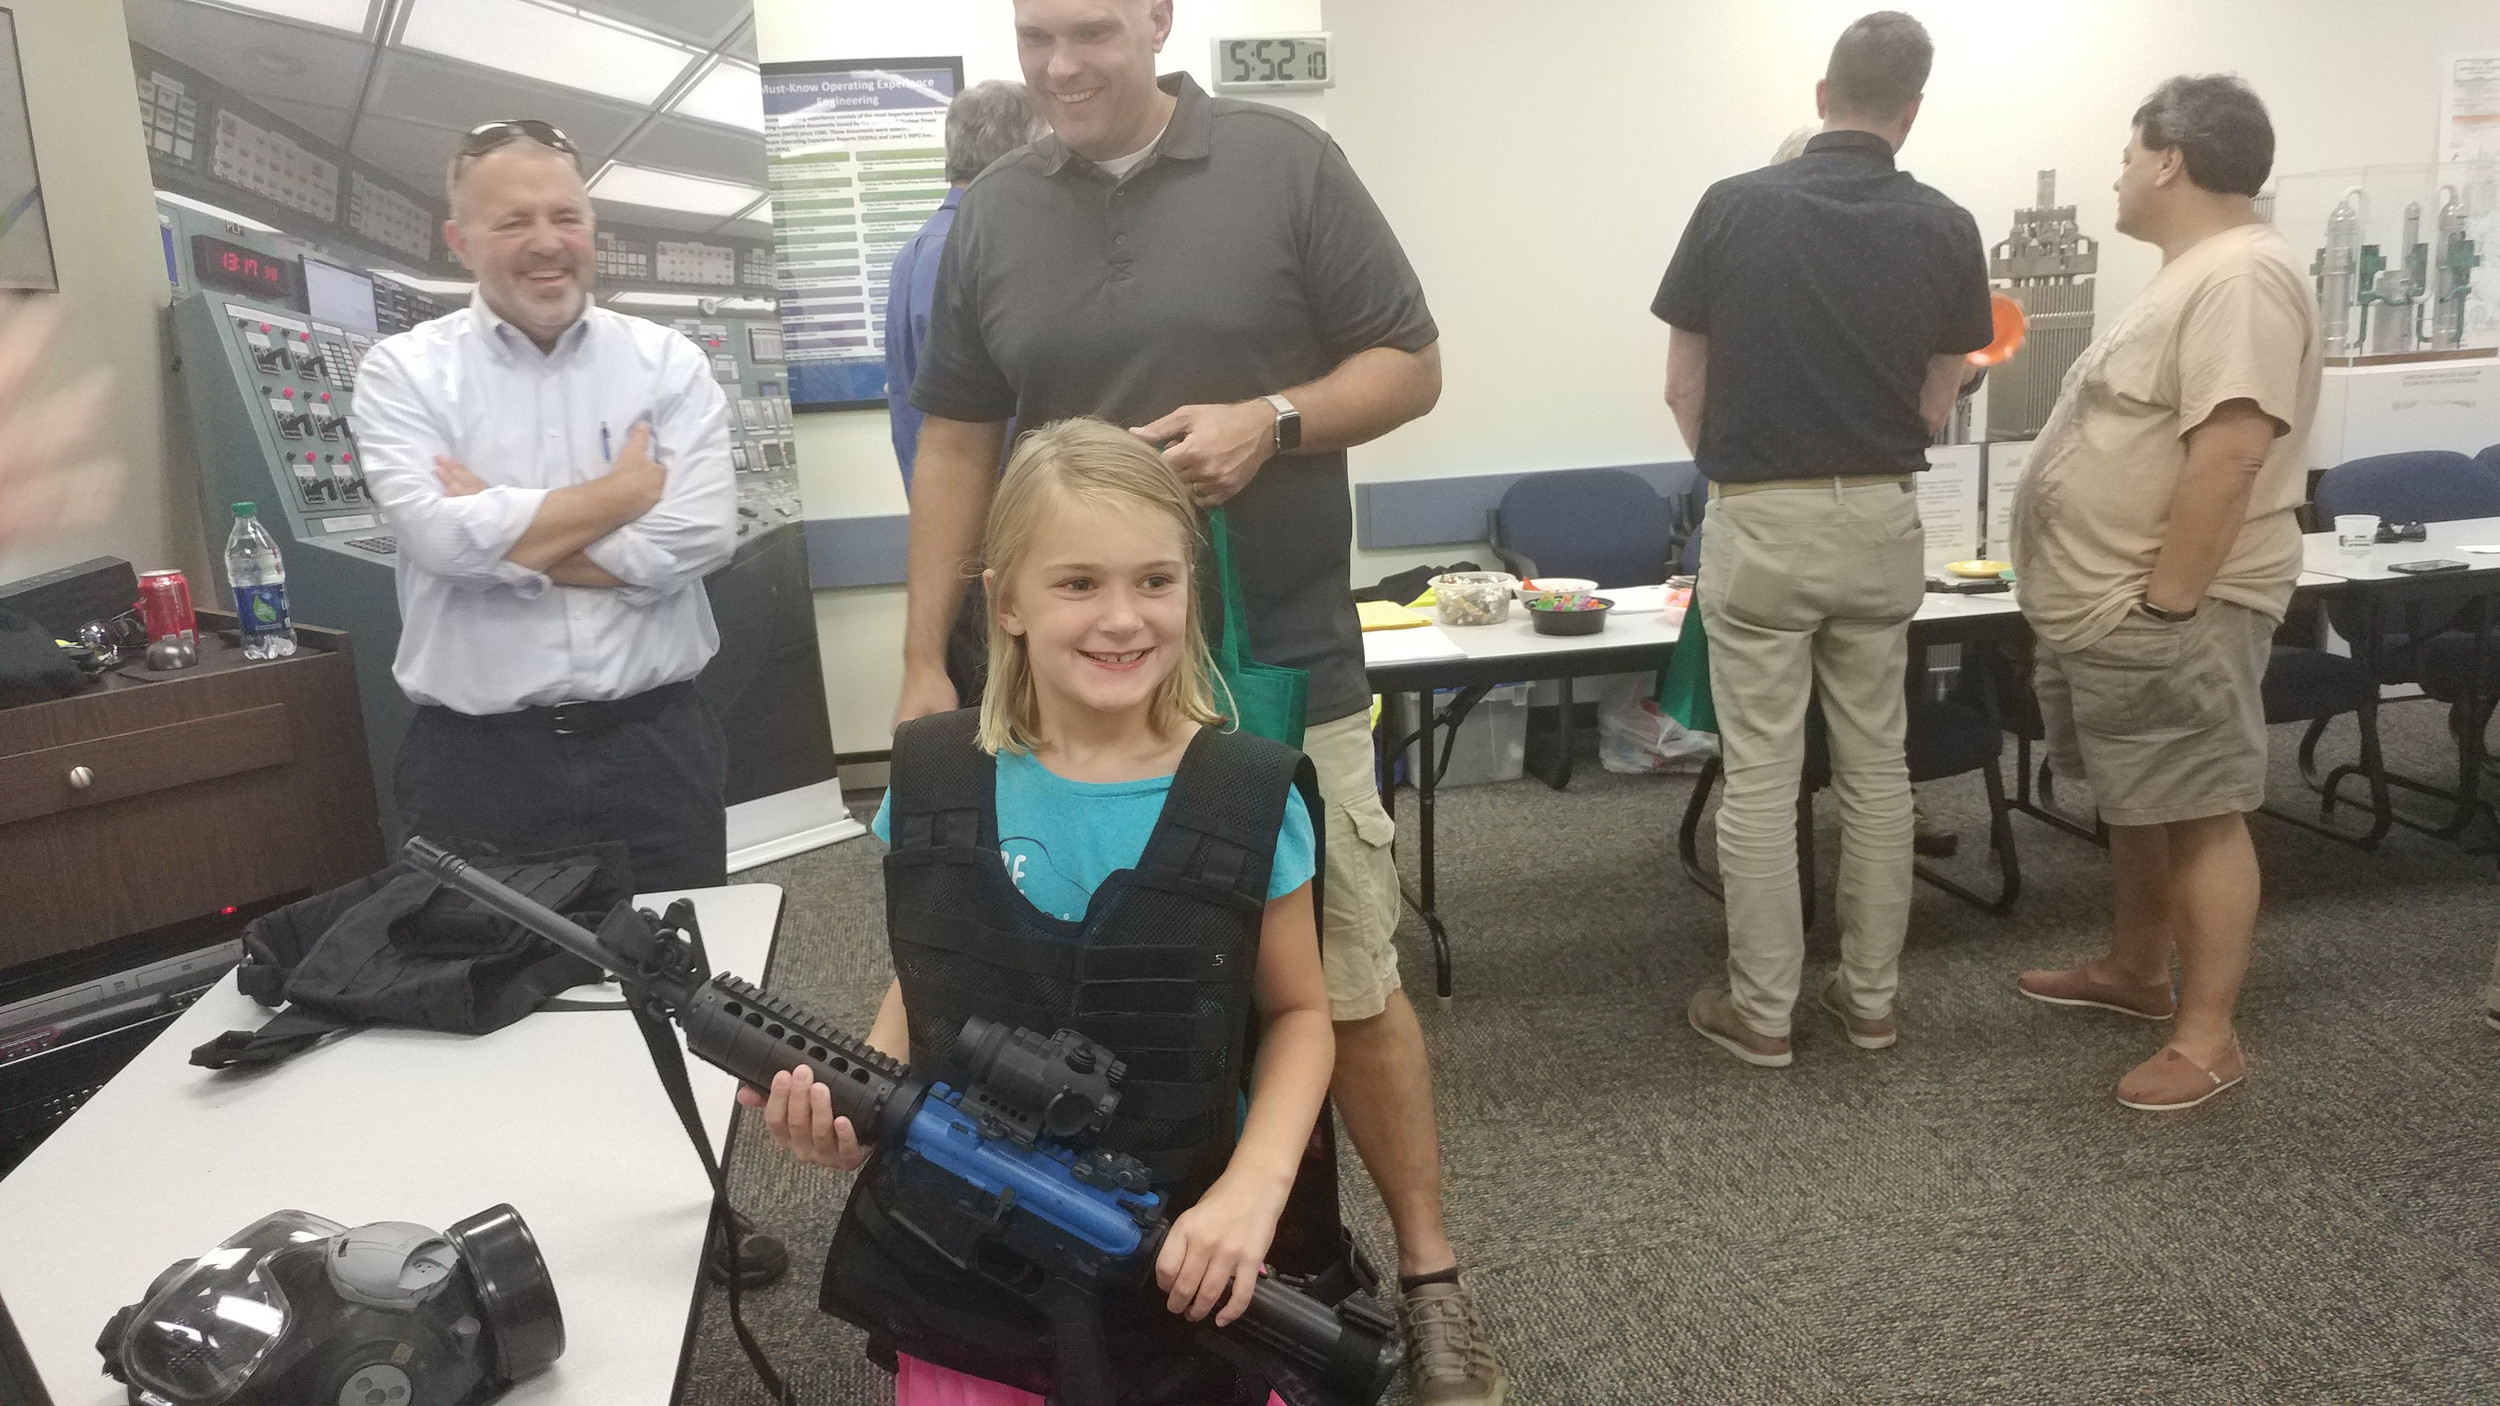 Abigail Reed, 7, tests out the bulletproof vest and mock gun potentially used by TMI employees in case of emergency at the open house event on Thursday, Sept. 7.